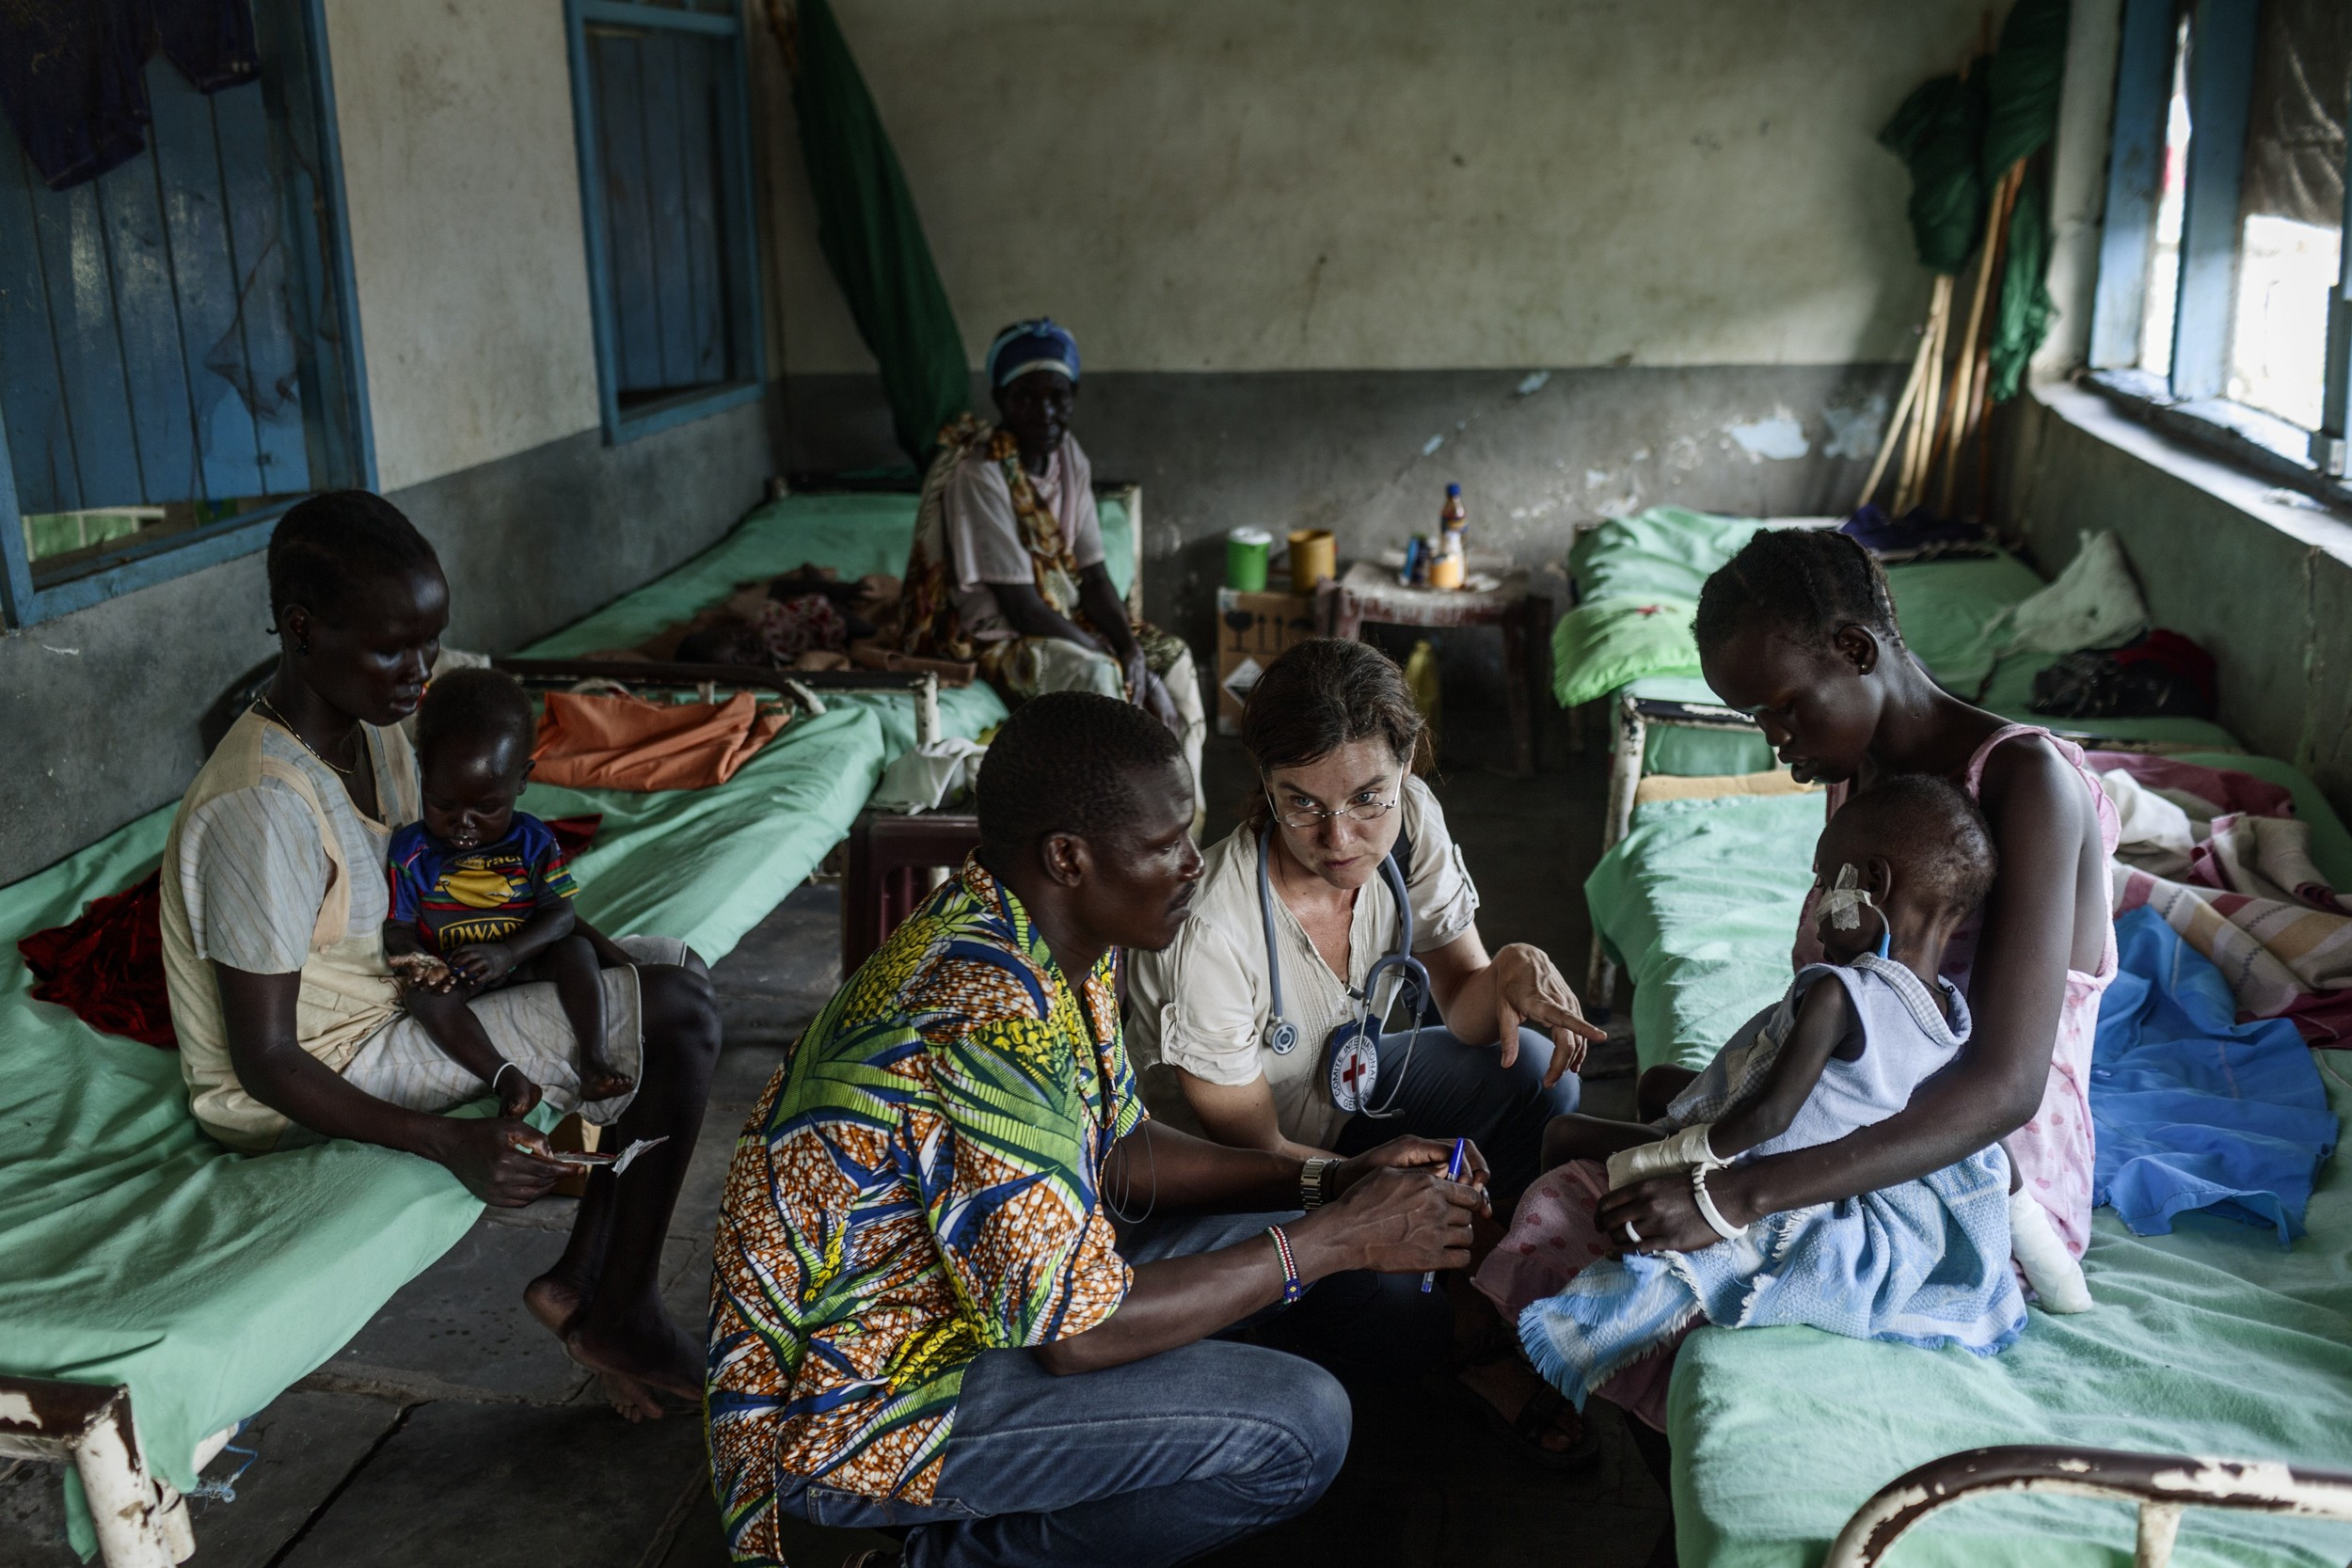 Malakal, South Sudan teaching hospital. ICRC pediatrician on duty at the therapeutic feeding center (malnutrition ward). ©Getty Images/ICRC